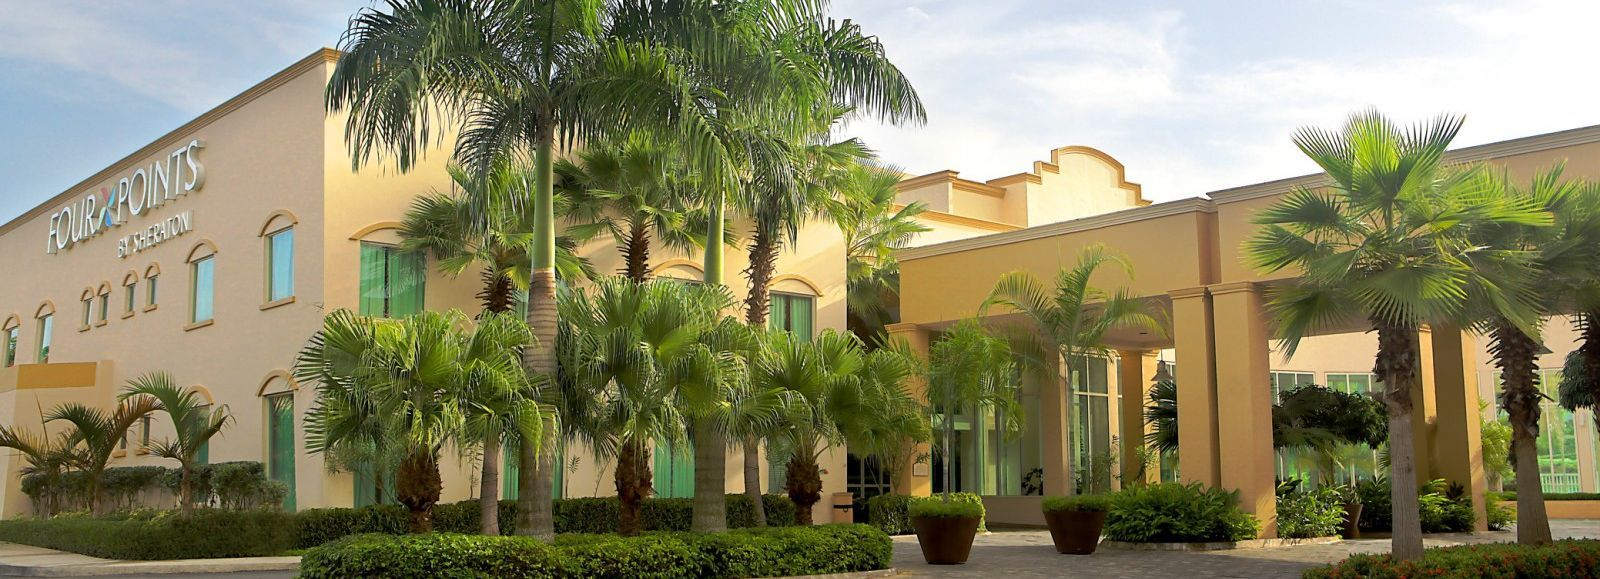 Four Points by Sheraton Caguas - Exterior